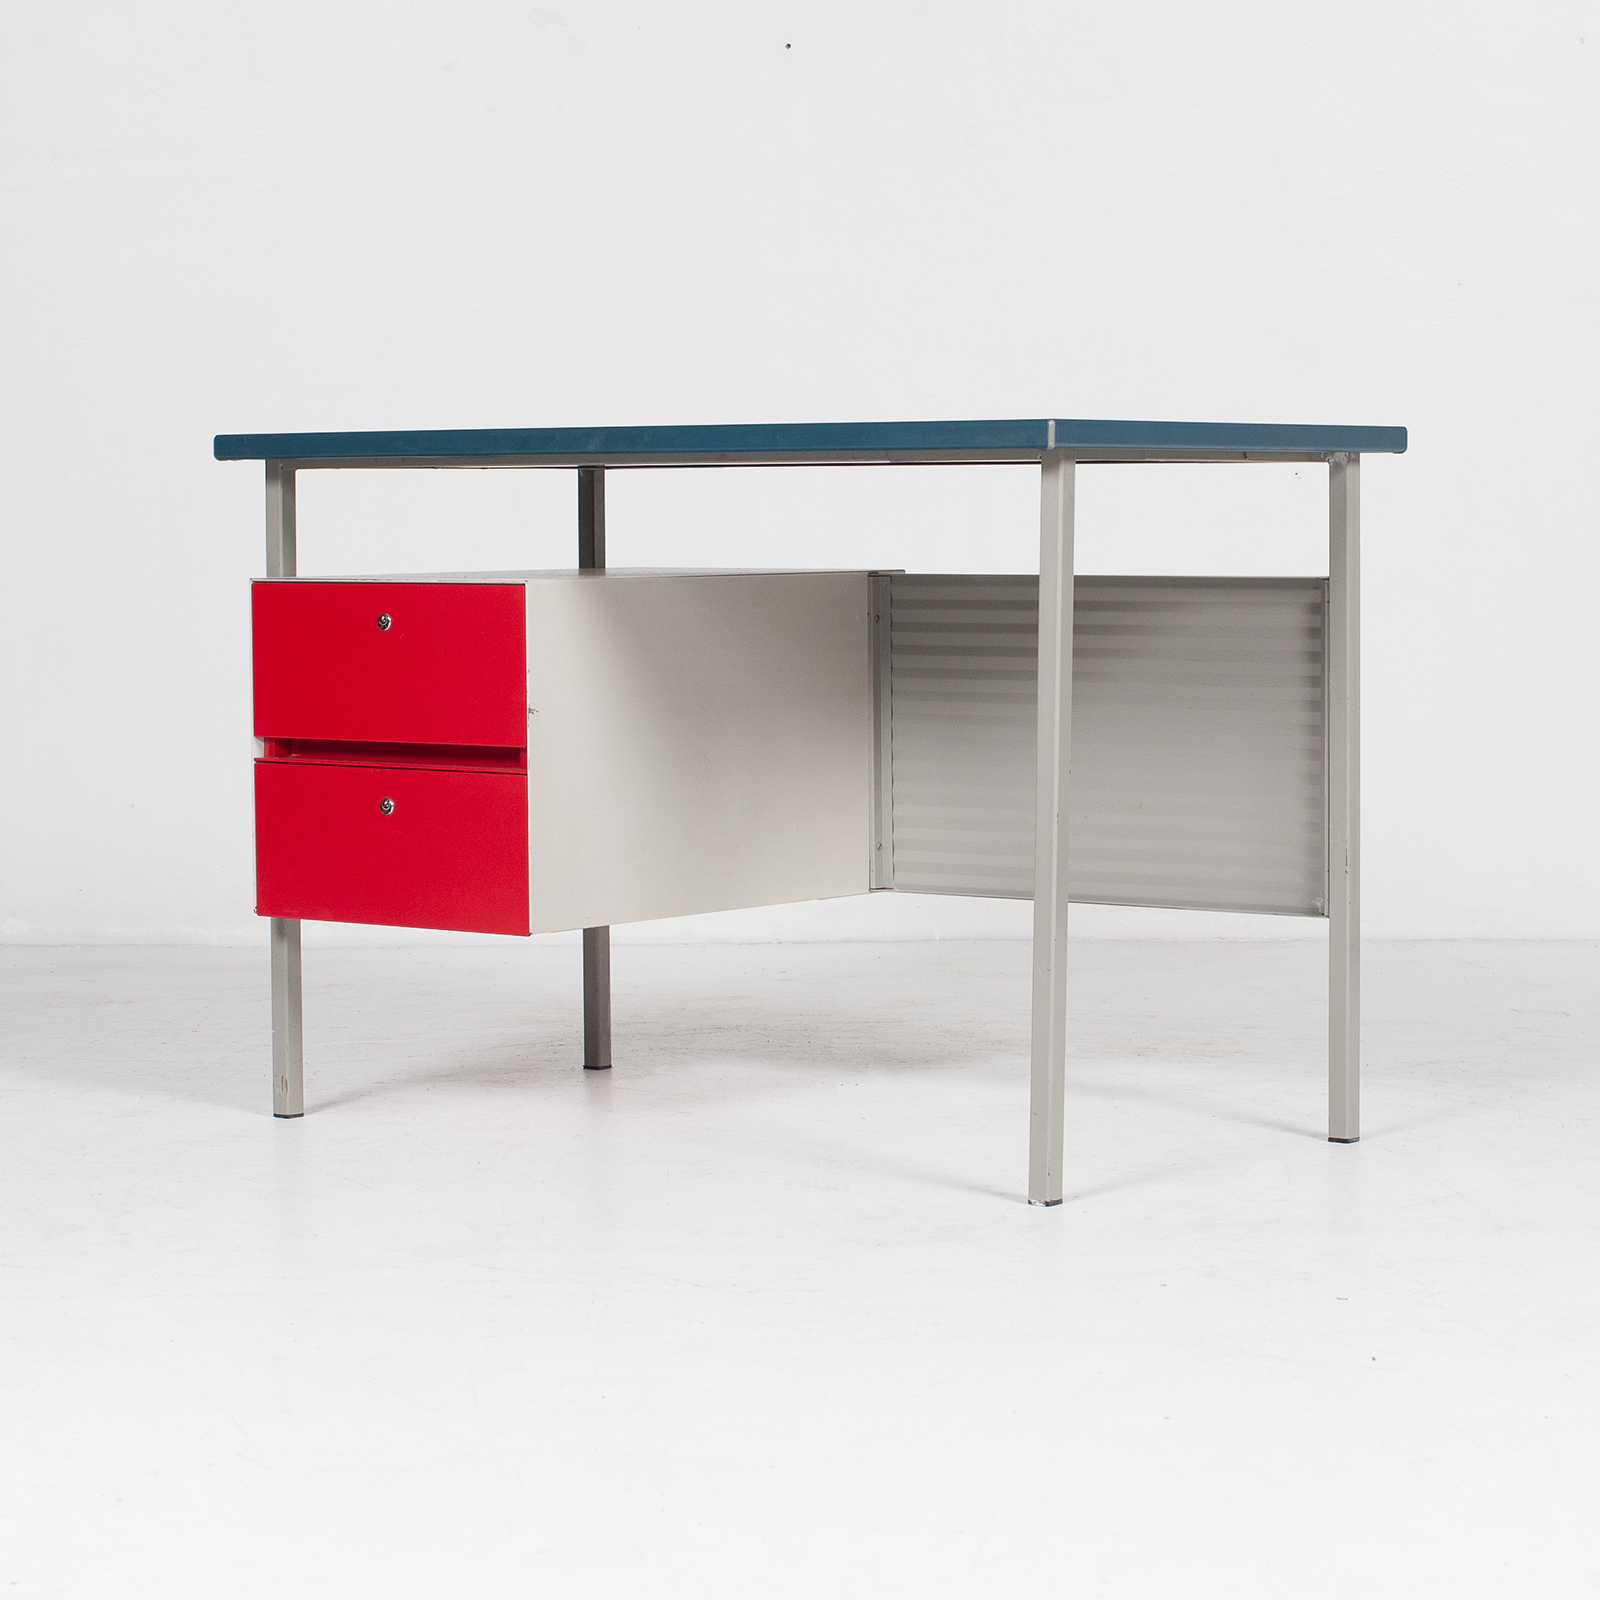 3803 Industrial Desk By Andre Cordemeyer For Gispen With Blue Vinyl Top And Red Enamelled Drawers, 1950s, The Netherlands 48